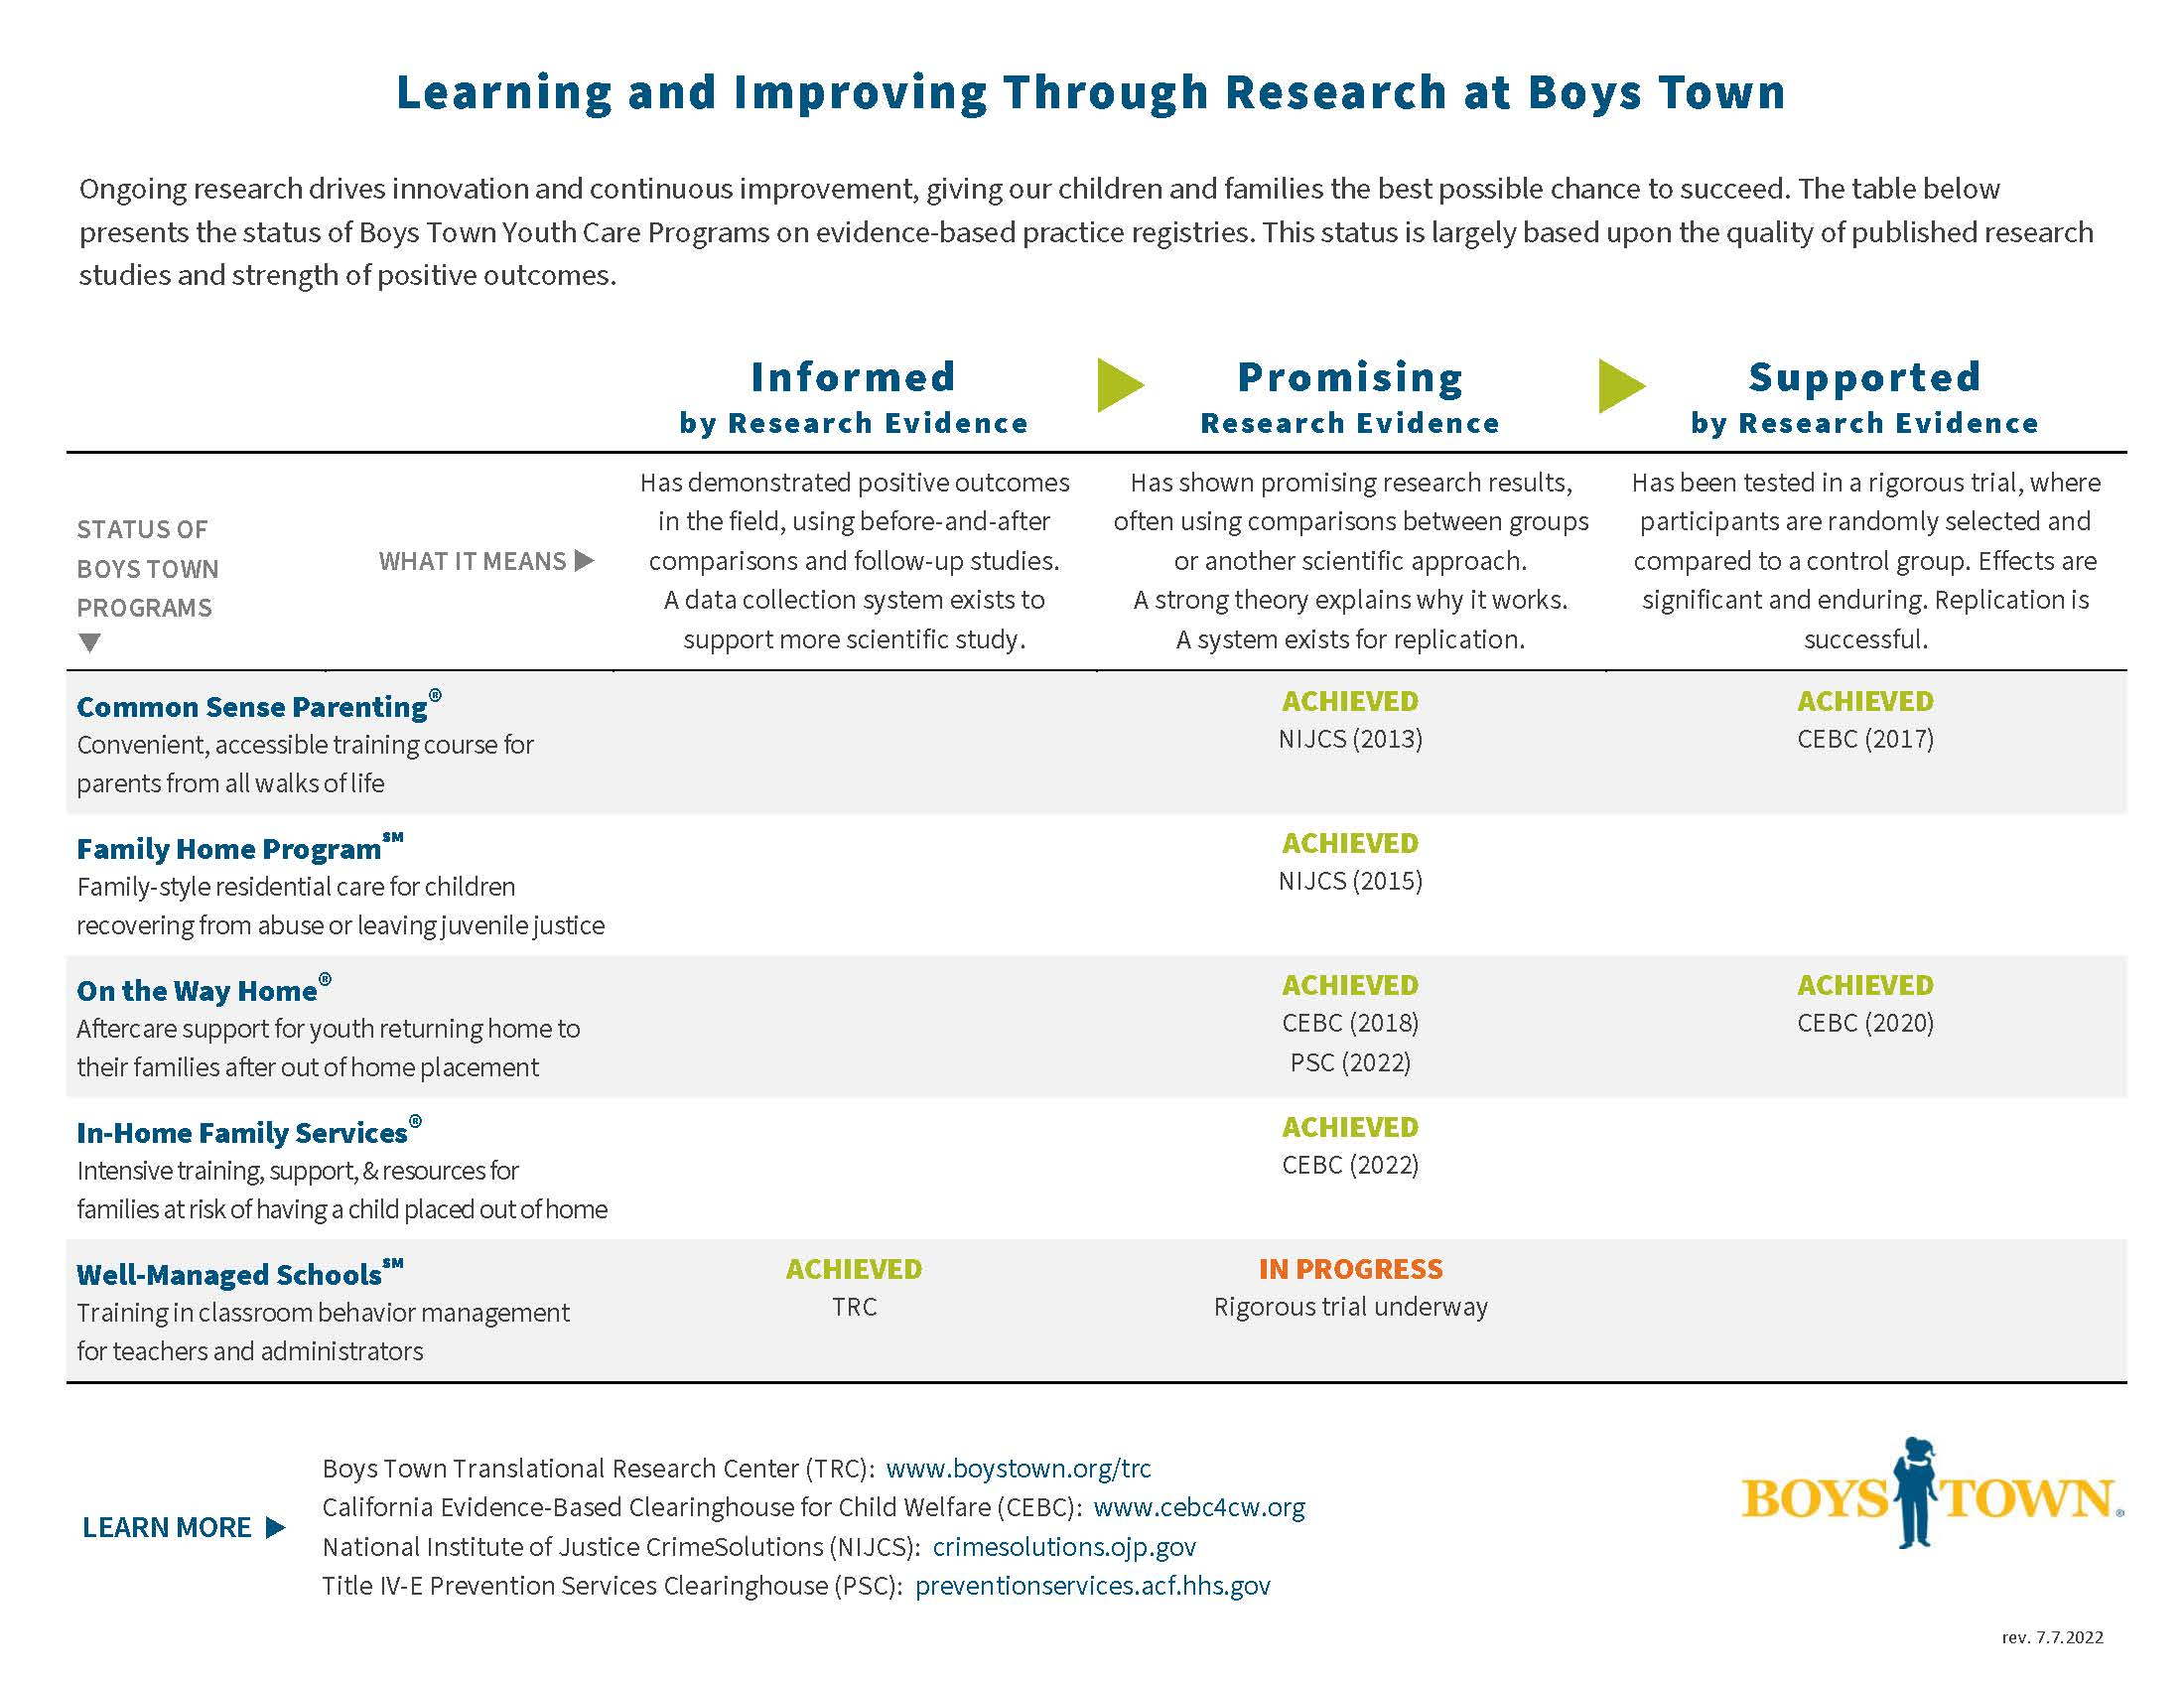 Learning and Improving through Research